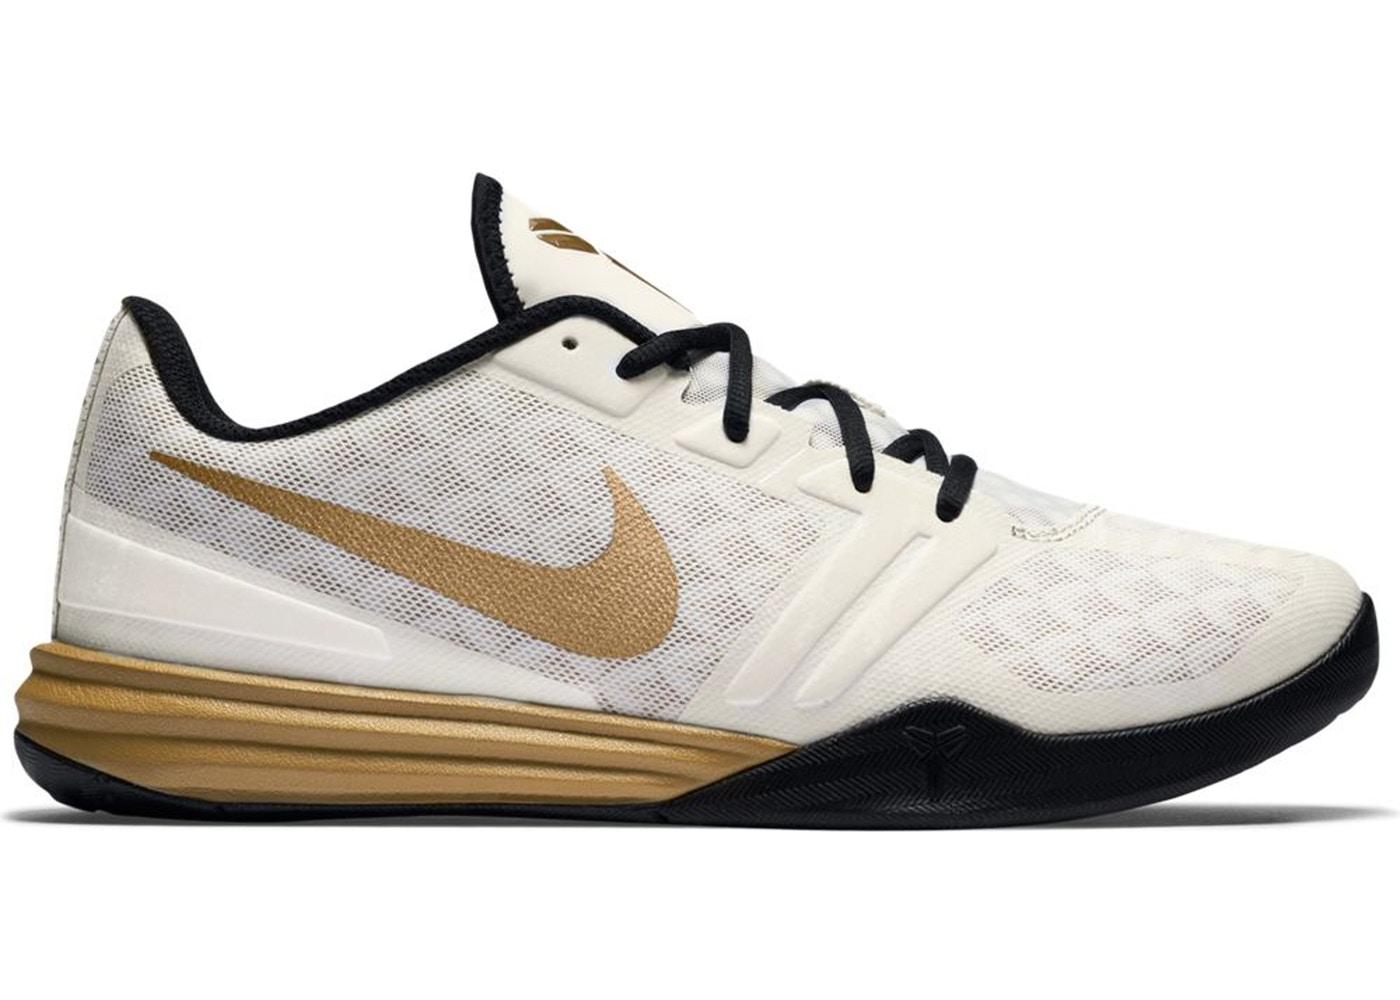 Buy Nike Kobe Other Shoes   Deadstock Sneakers 35362a8e64c9